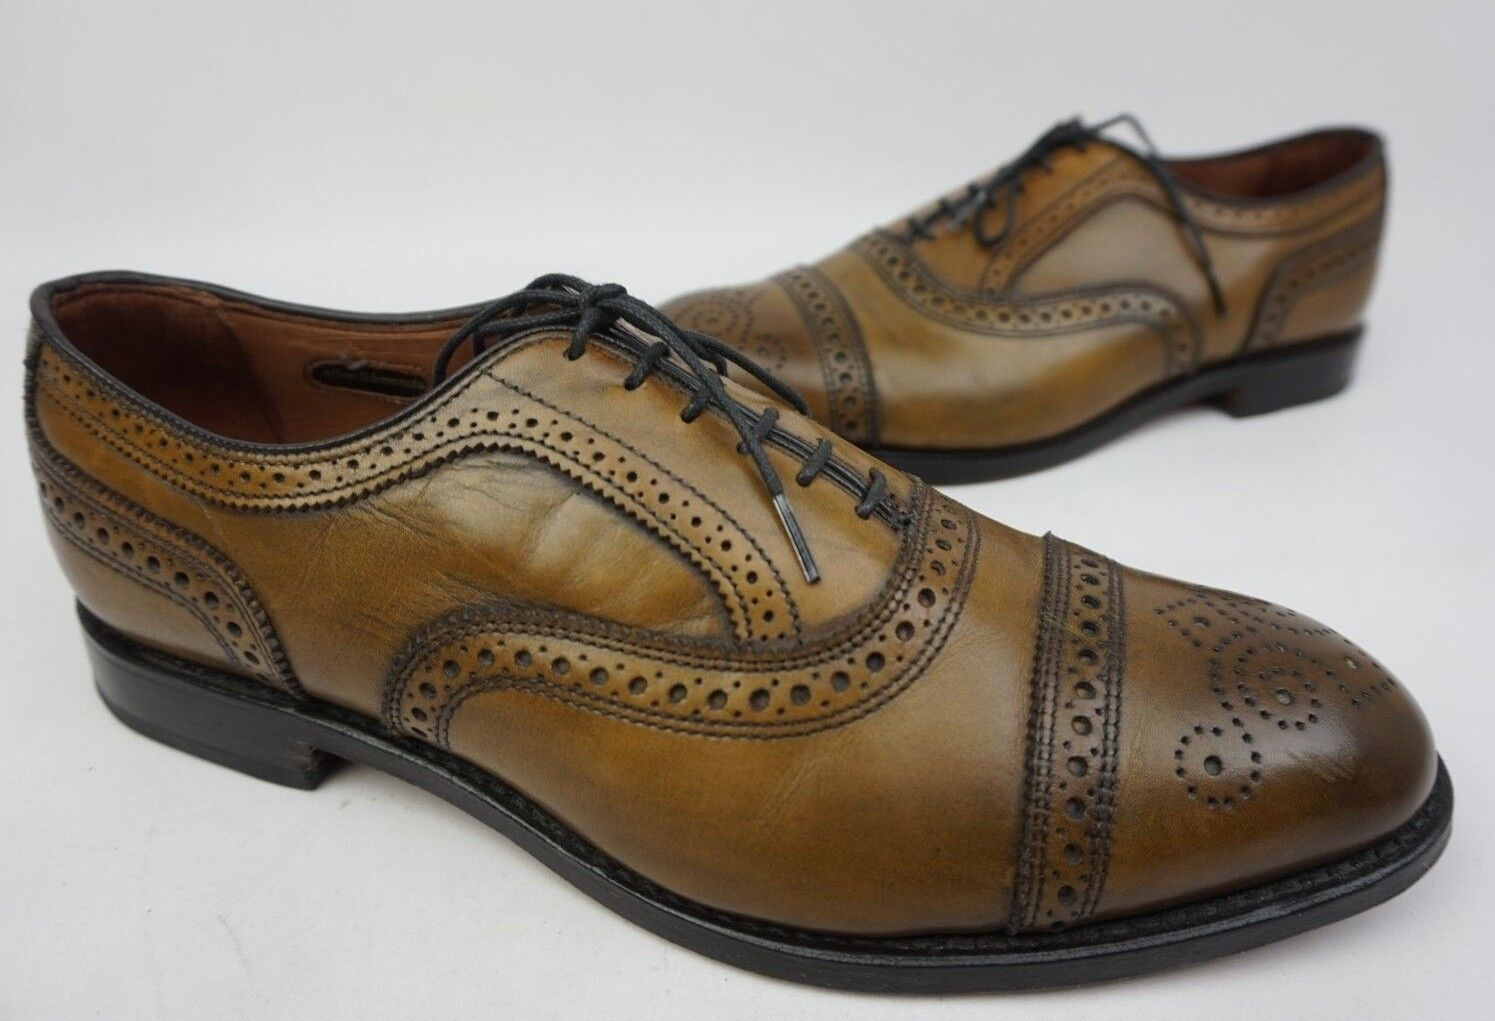 Allen Edmonds Strand Cap Toe Oxford Olive Leather shoes Size 9.5 3E EEE +